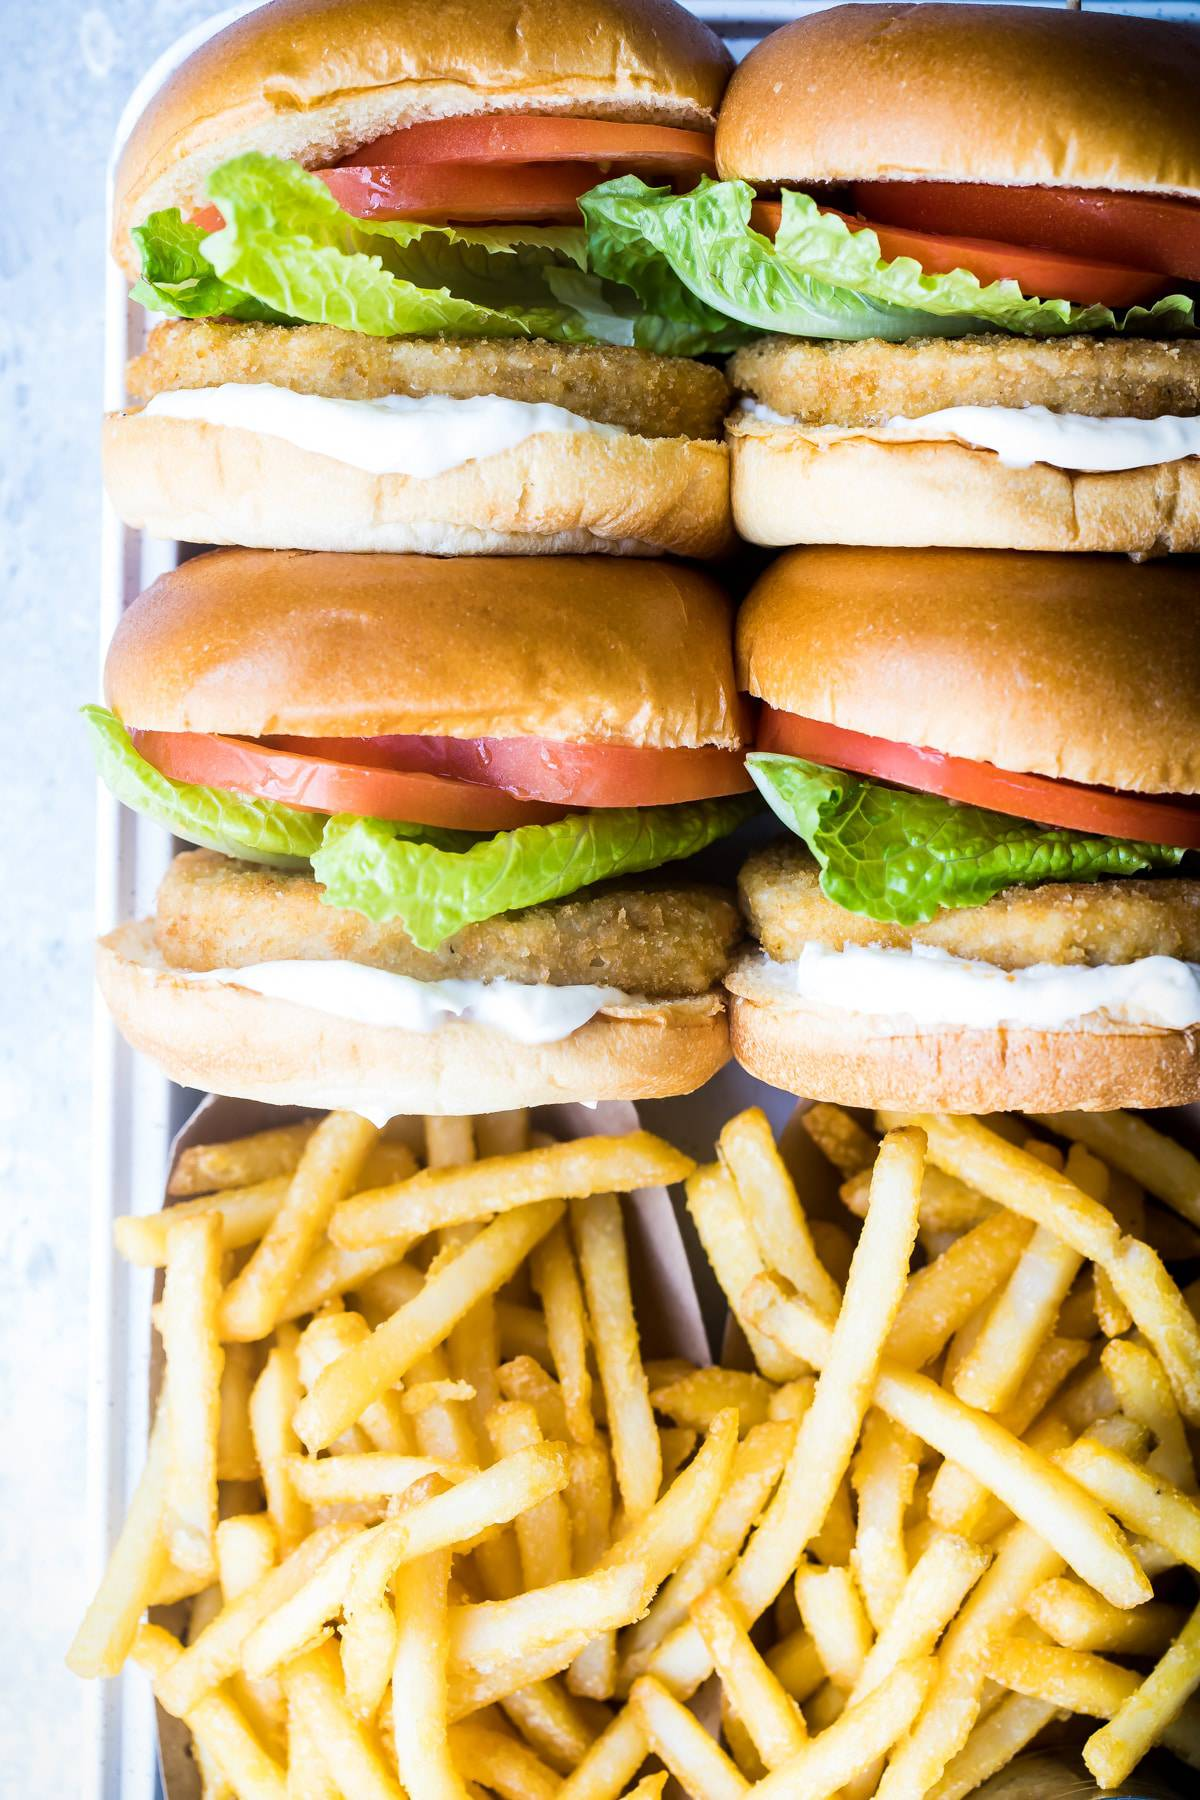 meatless chicken sandwiches with french fries